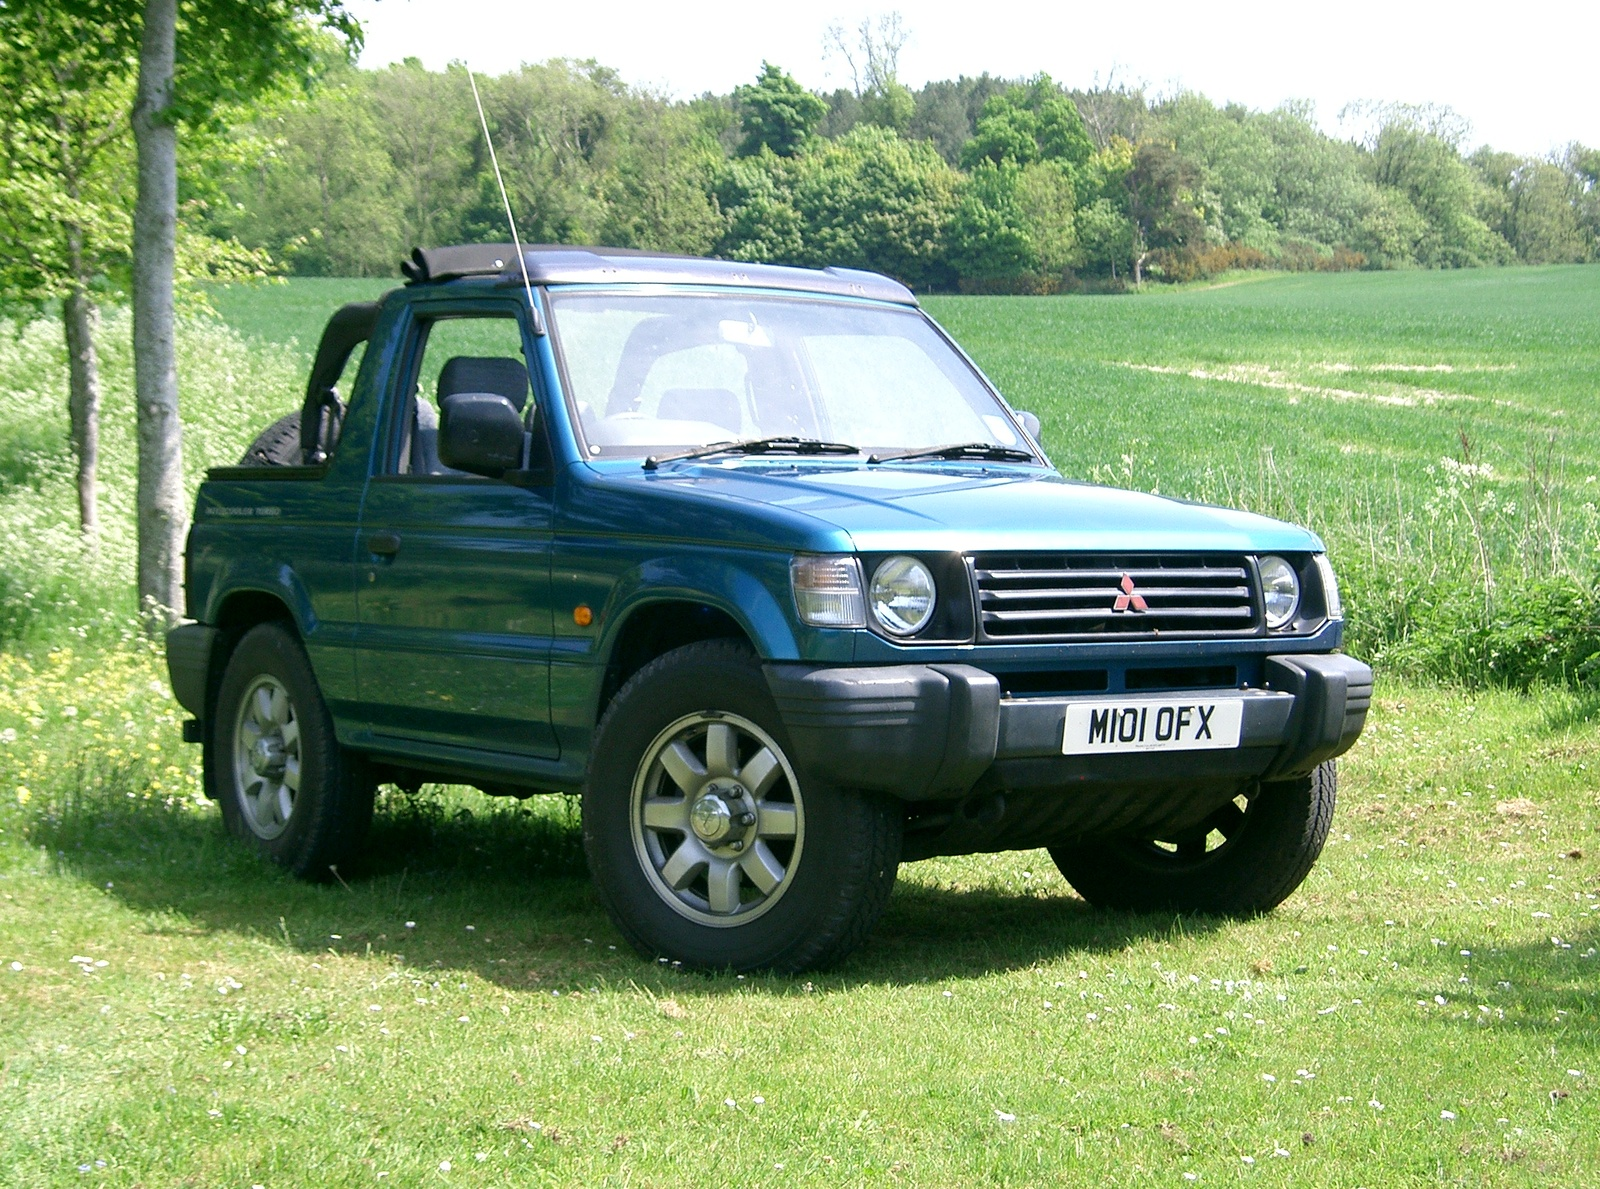 Mitsubishi Pajero 1985: Review, Amazing Pictures and Images – Look at the car